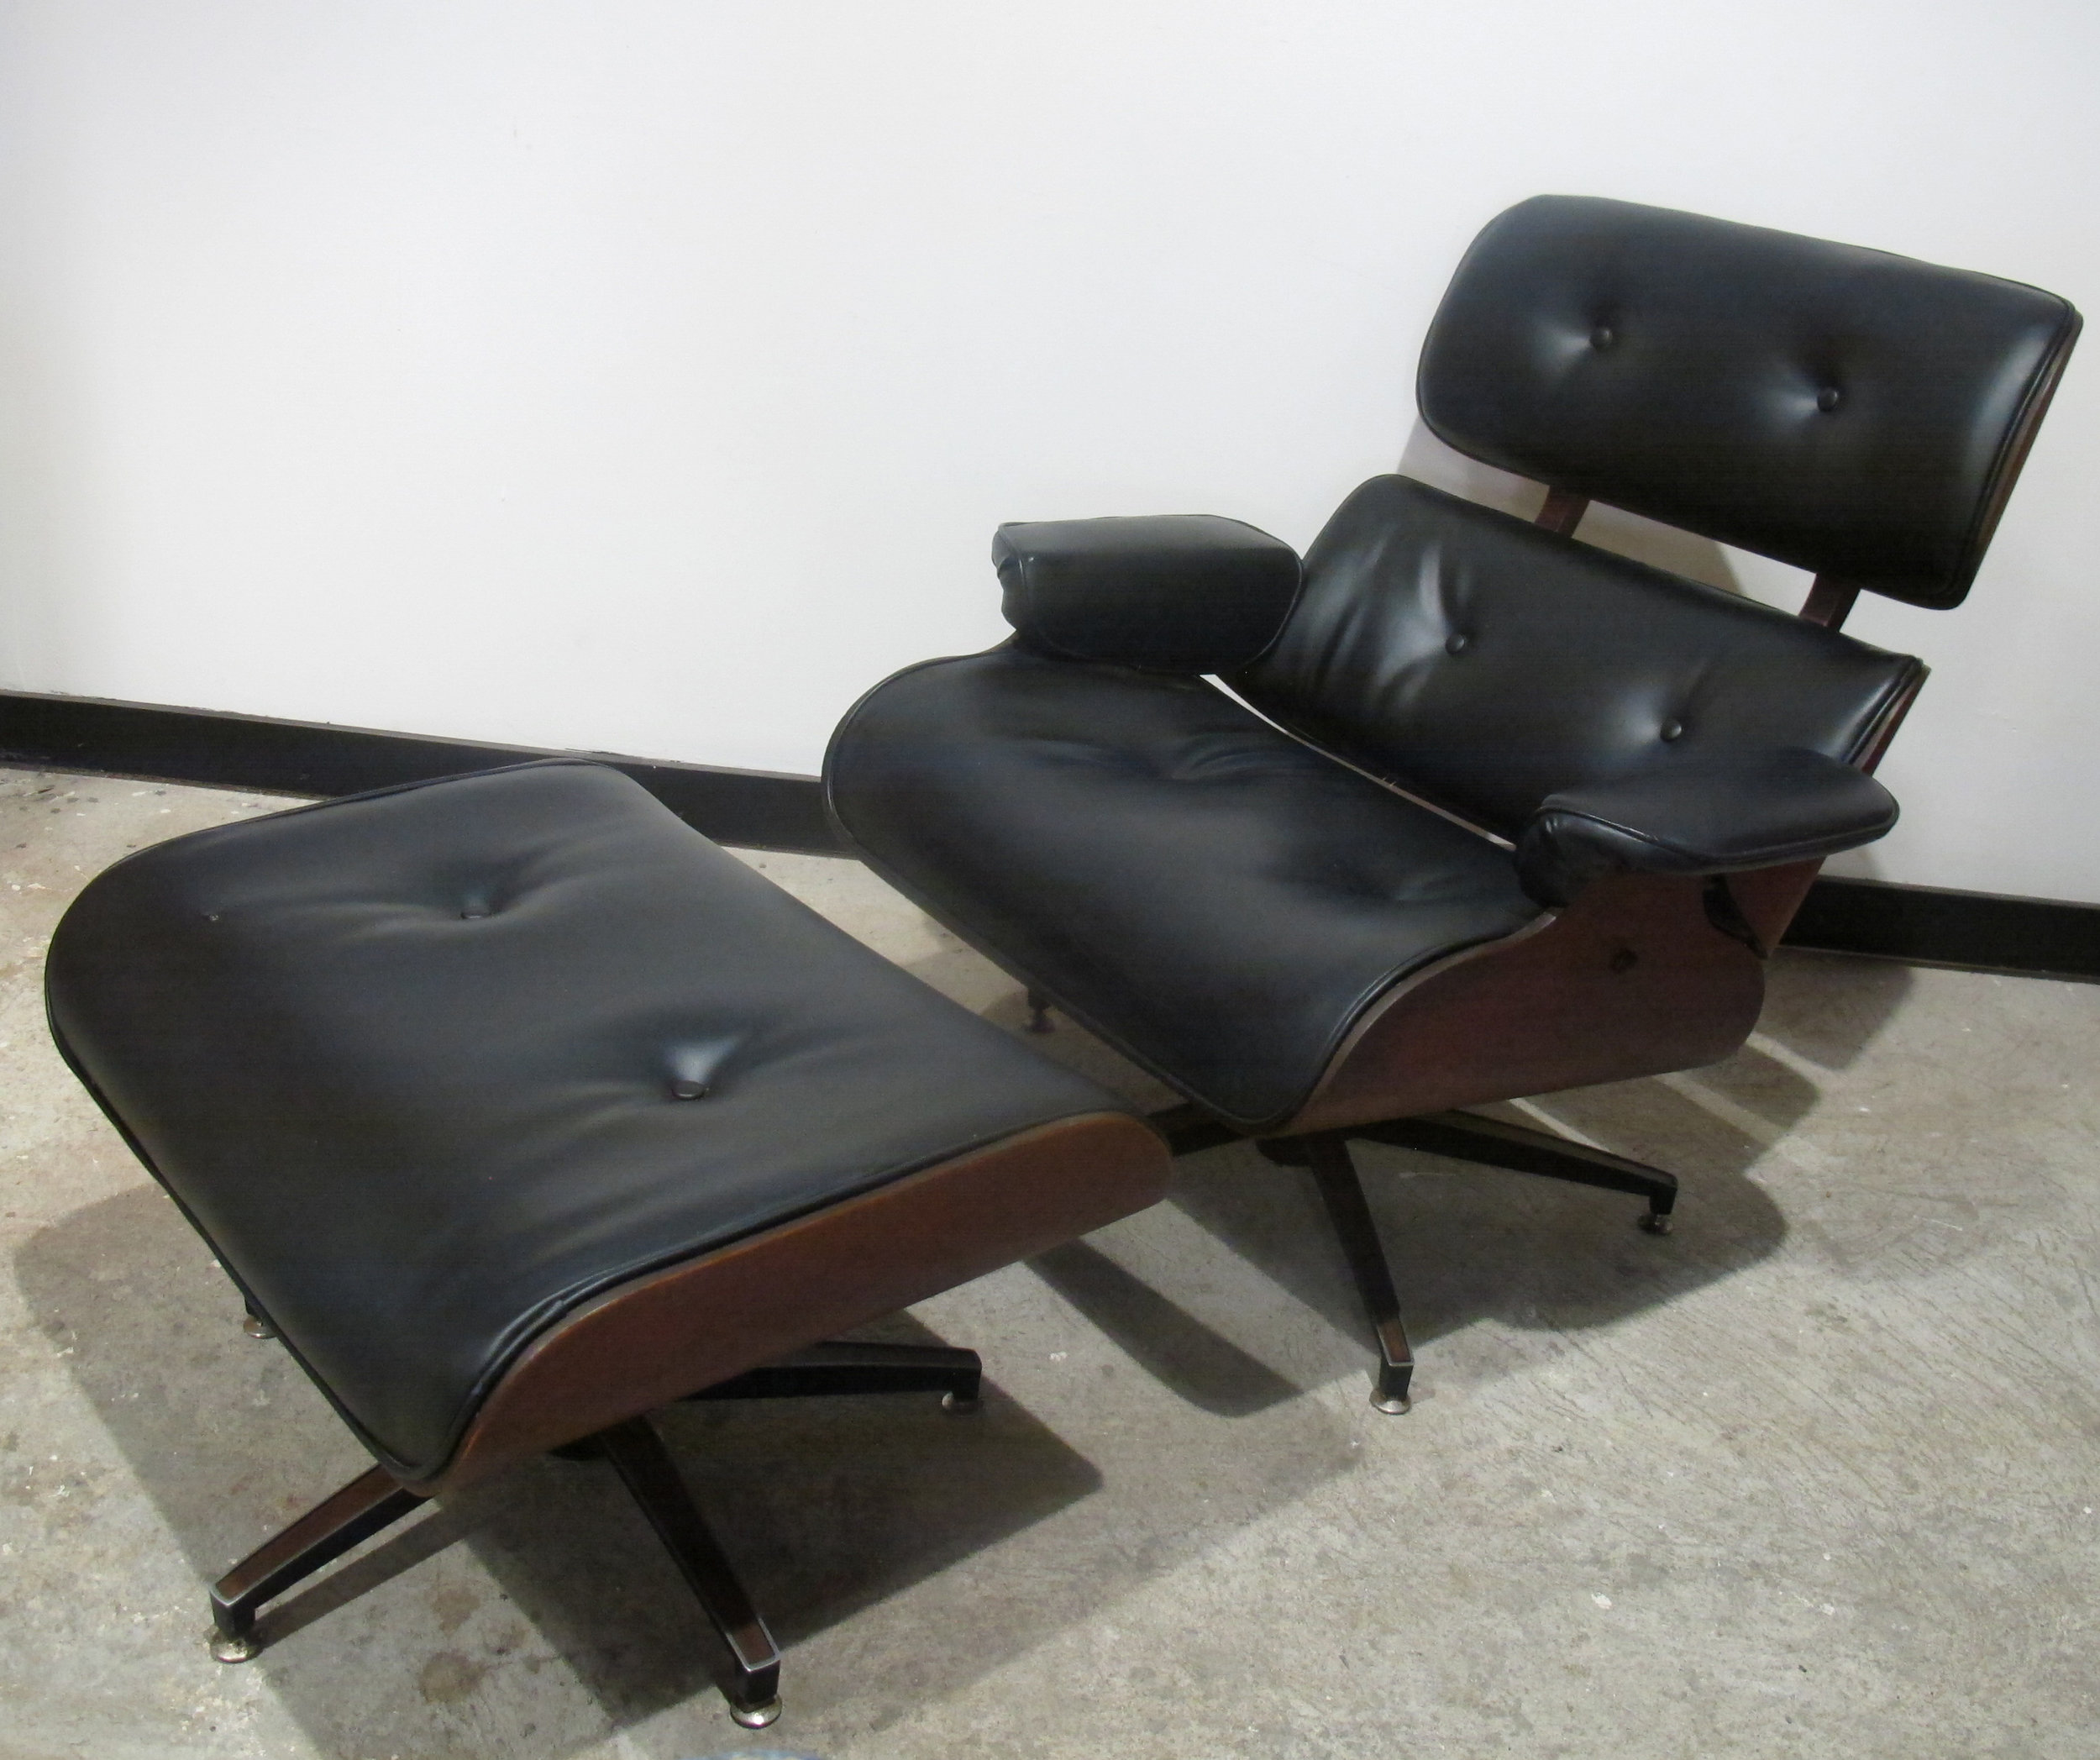 MID CENTURY EAMES STYLE WALNUT RECLINER AND OTTOMAN BY CHARLTON